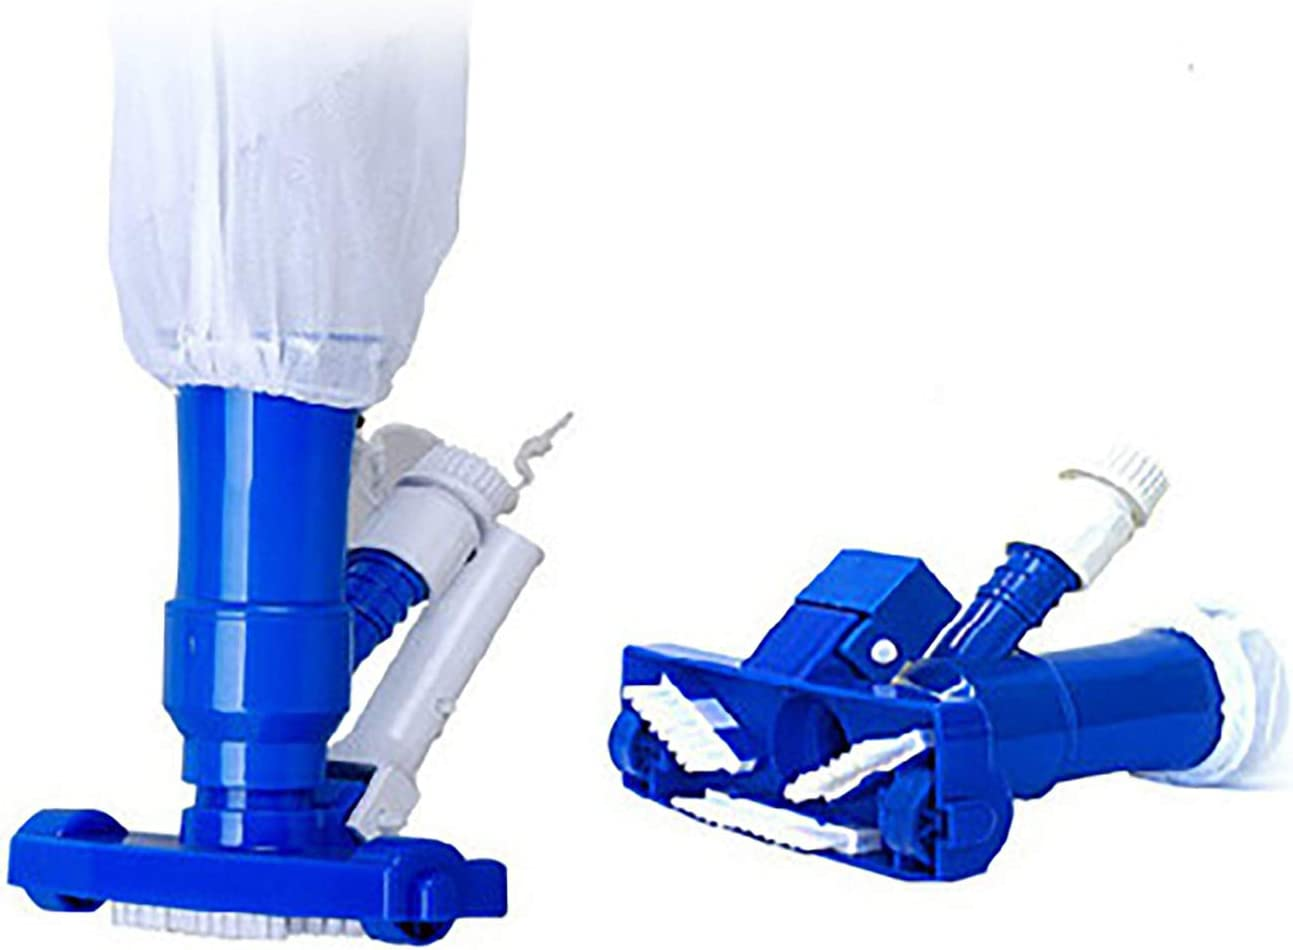 PoolSupplyTown Mini Jet Vac Vacuum Cleaner w/ Brush, Bag (No Pole Included) For Pool, Spa, Jacuzzi, Fountain, and Hot Tub